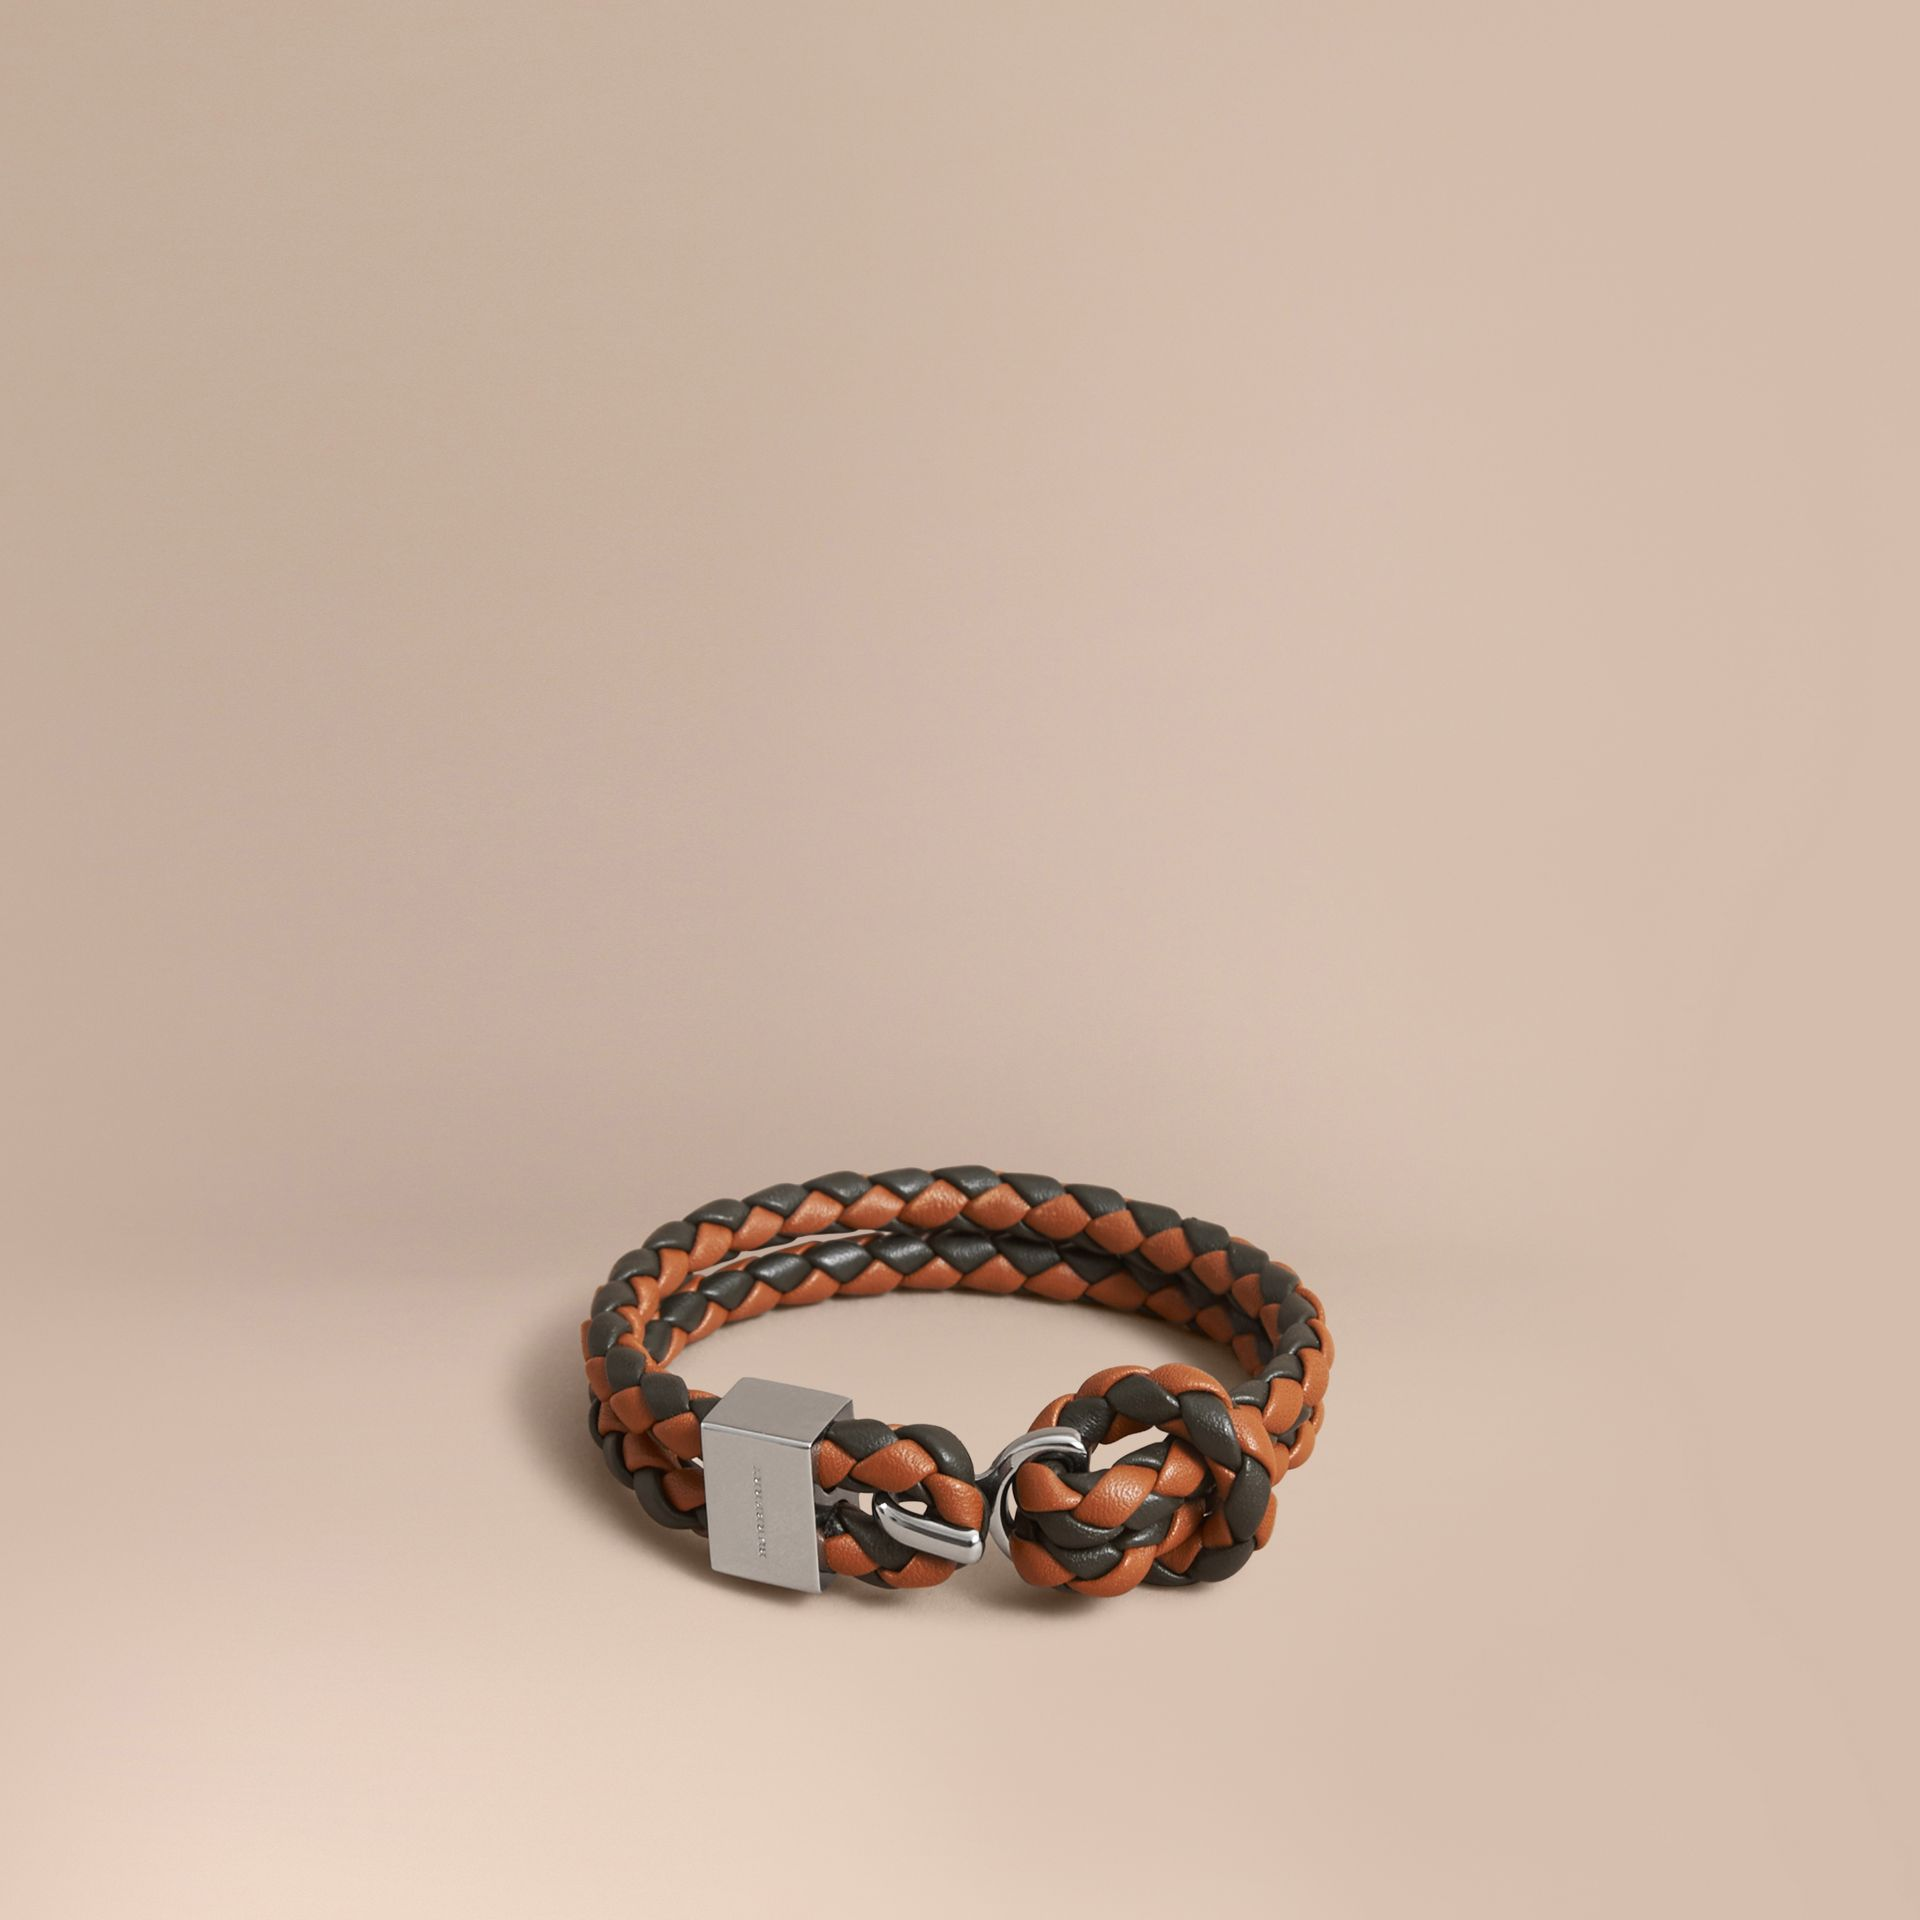 Two-tone Braided Leather Bracelet in Tan/black - Men | Burberry - gallery image 1